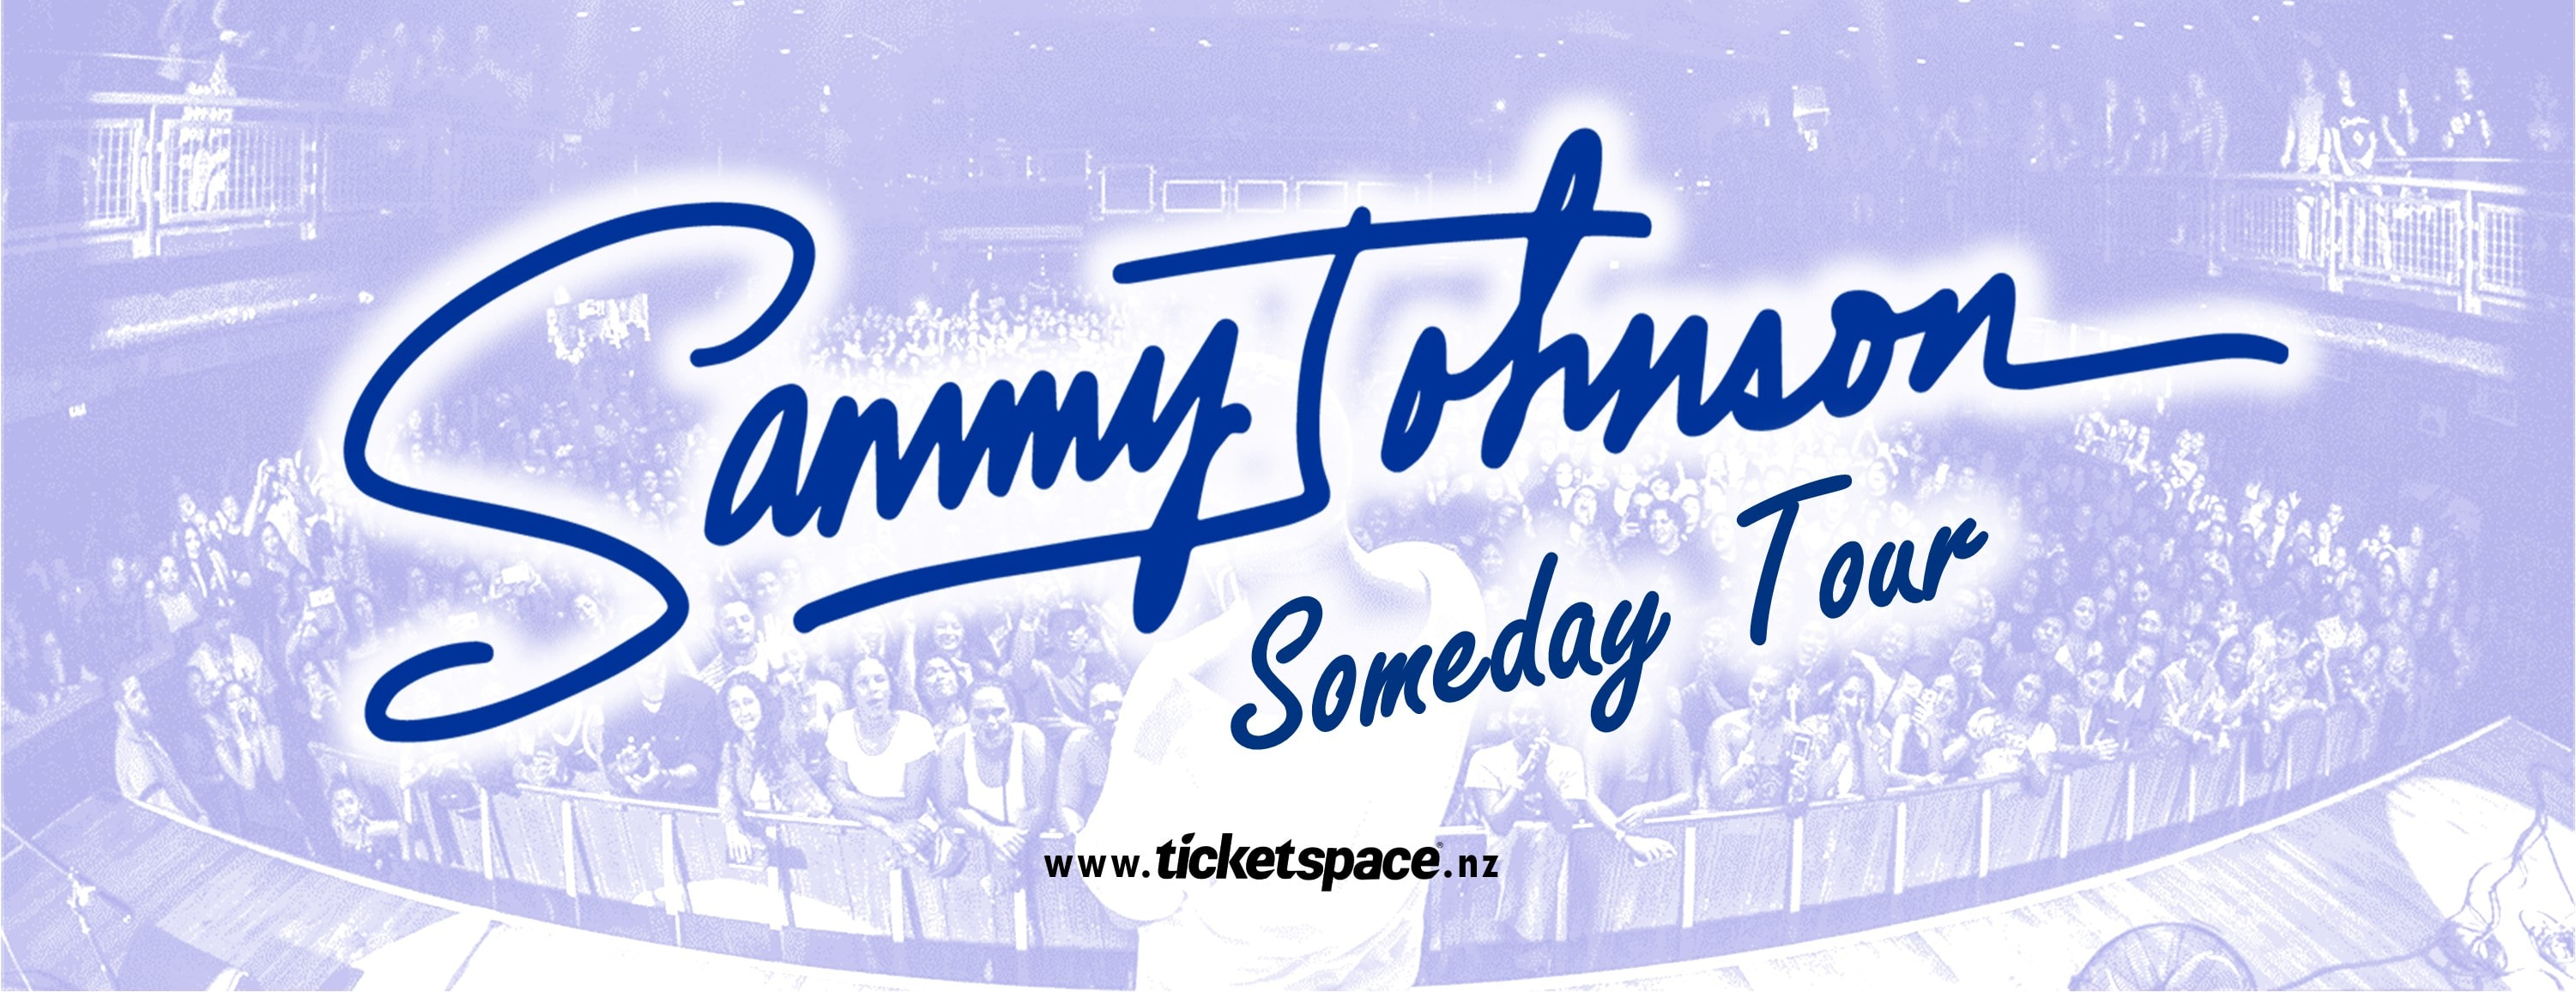 Find tickets from Sammy J Music